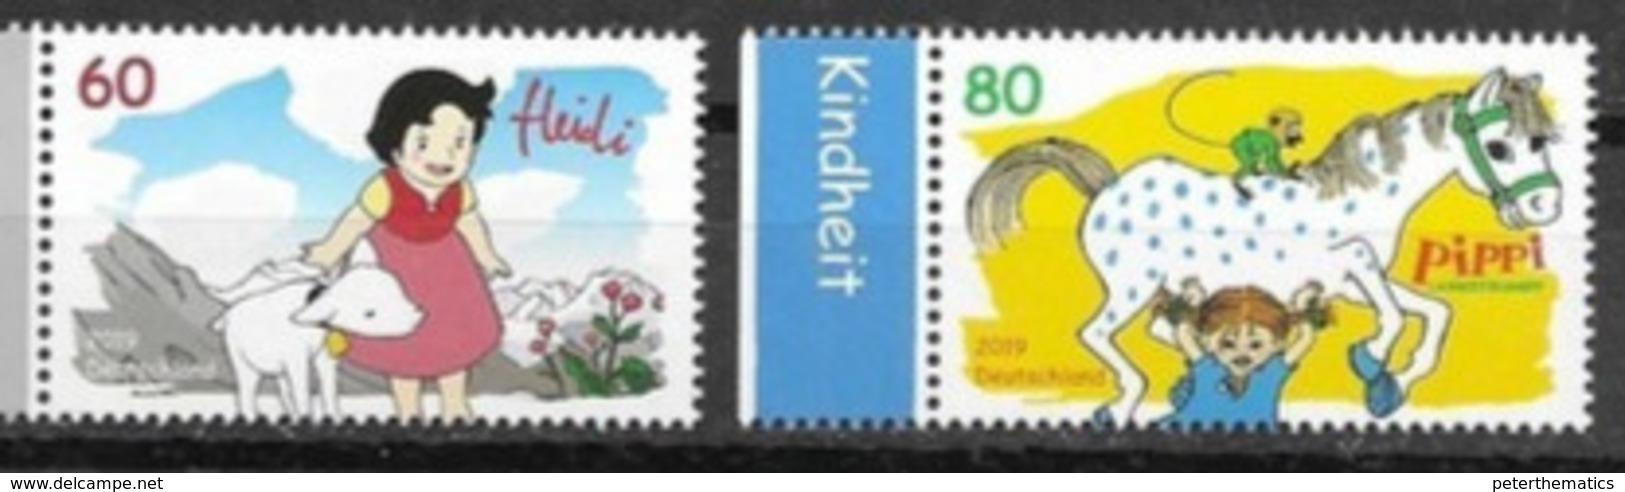 GERMANY, 2019,  MNH, CHILDREN SERIES, HEIDI, PIPPI , HORSES, LAMBS, MOUNTAINS, 2v - Childhood & Youth